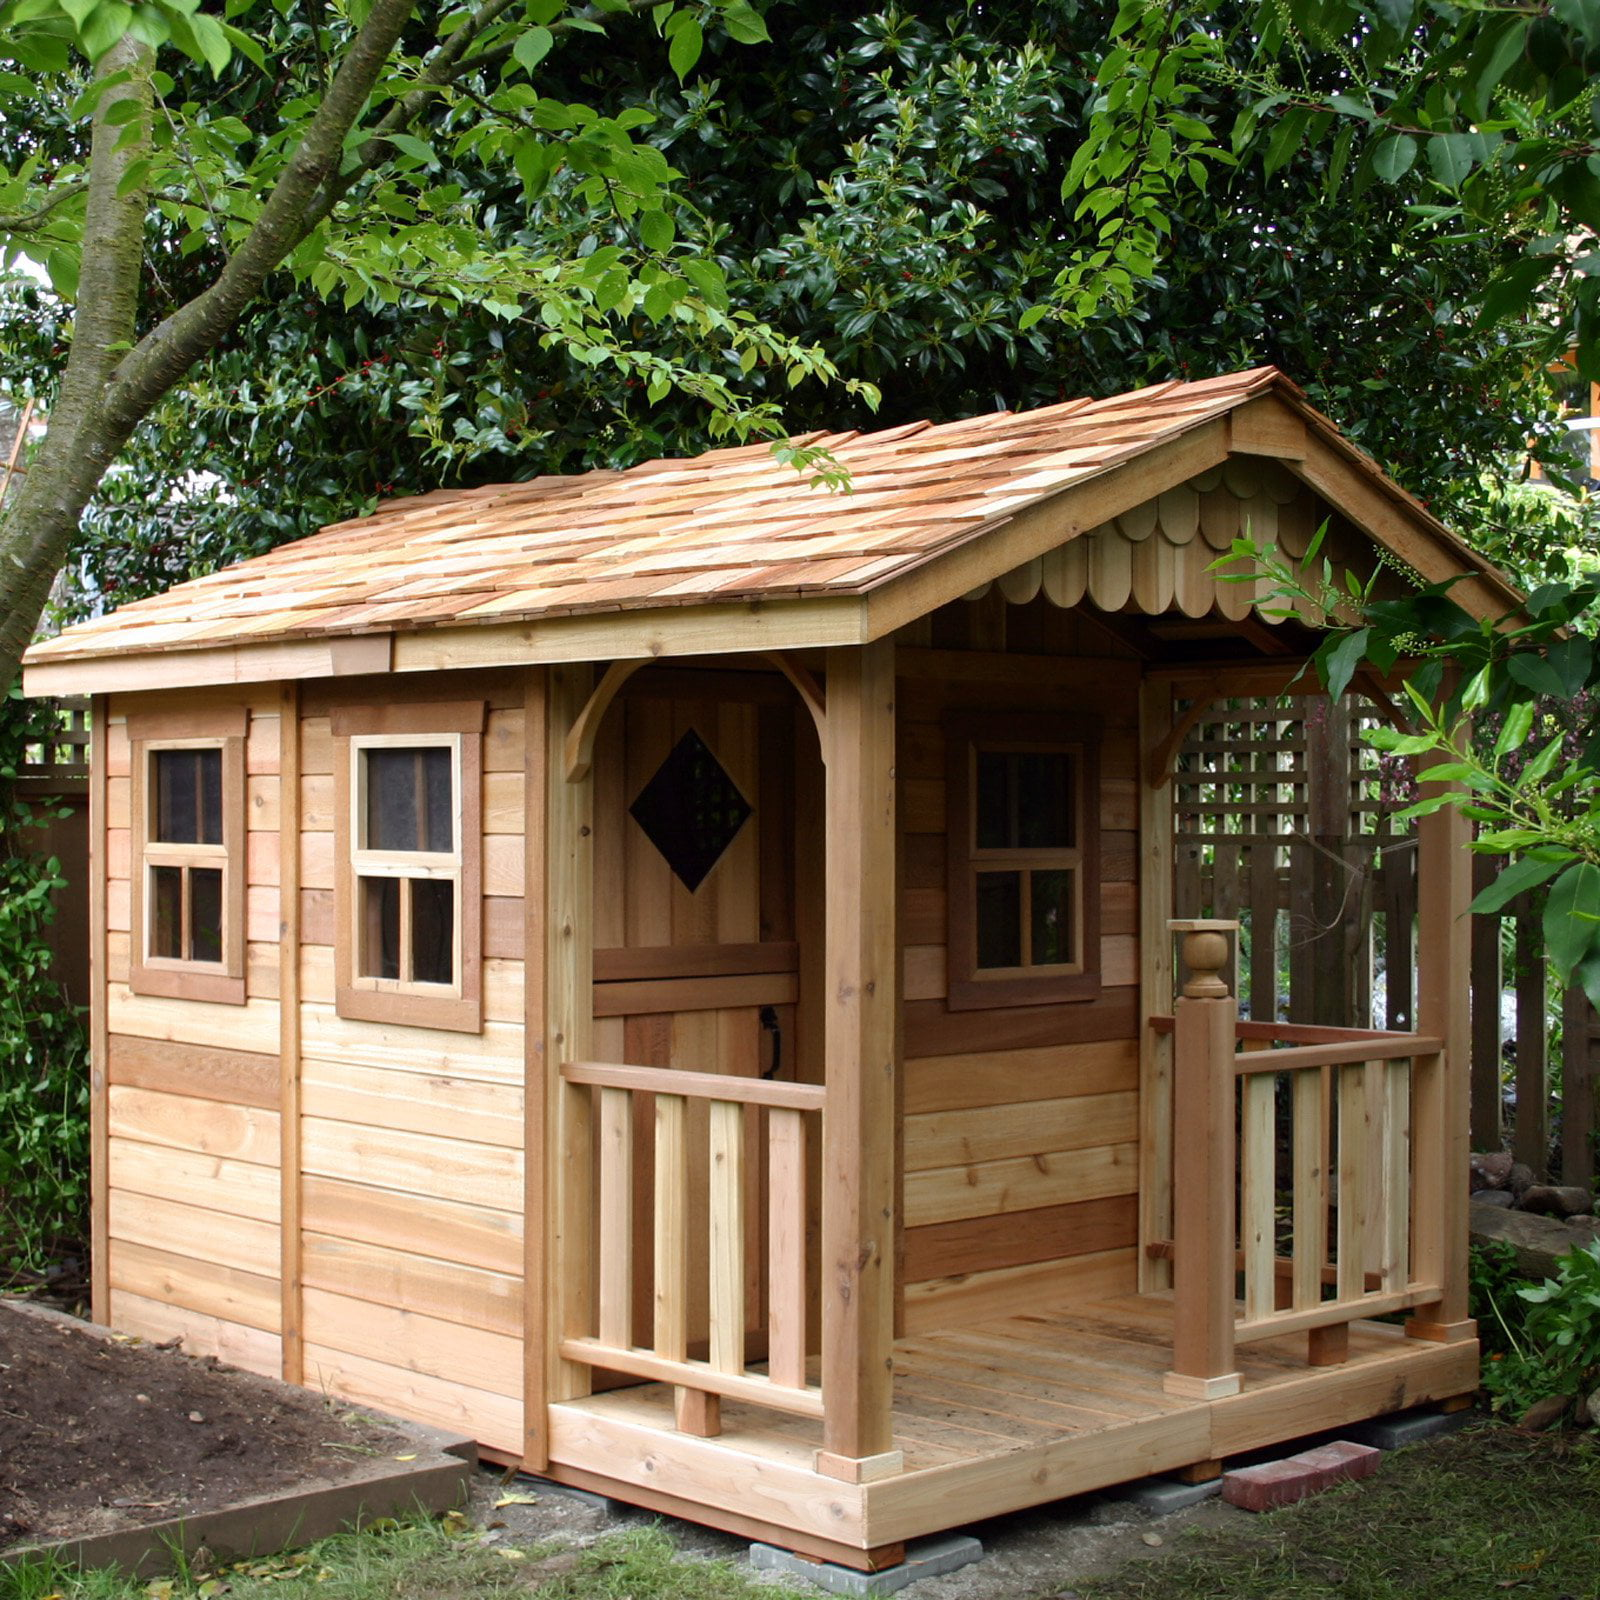 6 x 9 Sunflower Playhouse by Outdoor Living Today